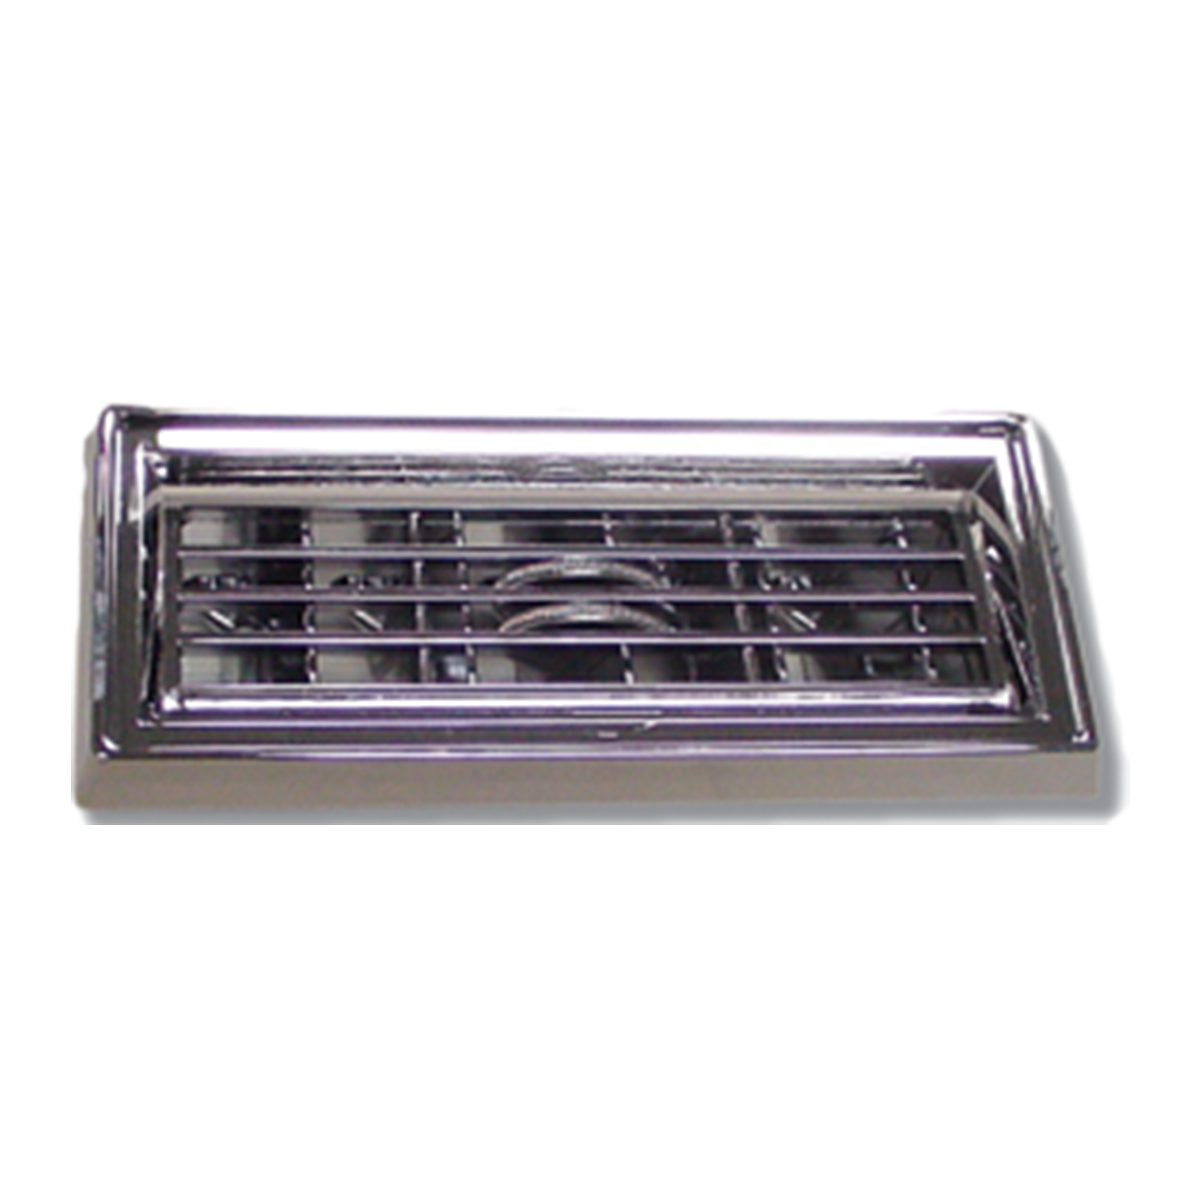 68283 Chrome Plastic Large A/C Vent Adjustable Louver for Peterbilt